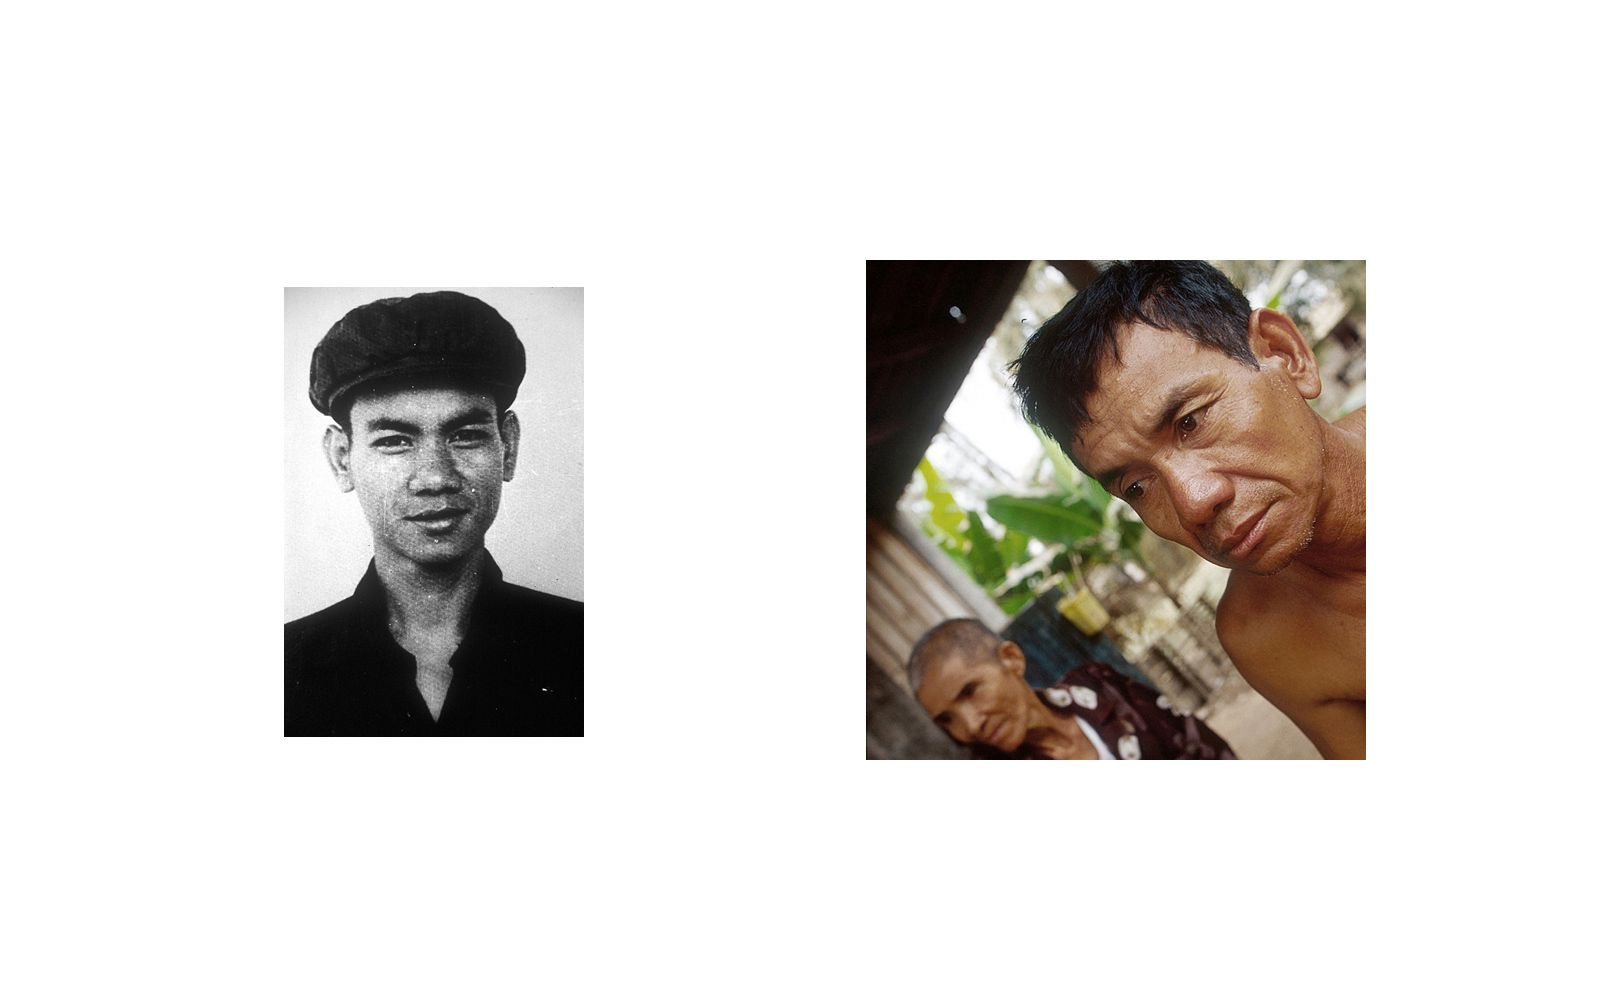 Suos thy , a former Khmer Rouge soldier, was a guard at Tuol Sleng(S-21) Prison.